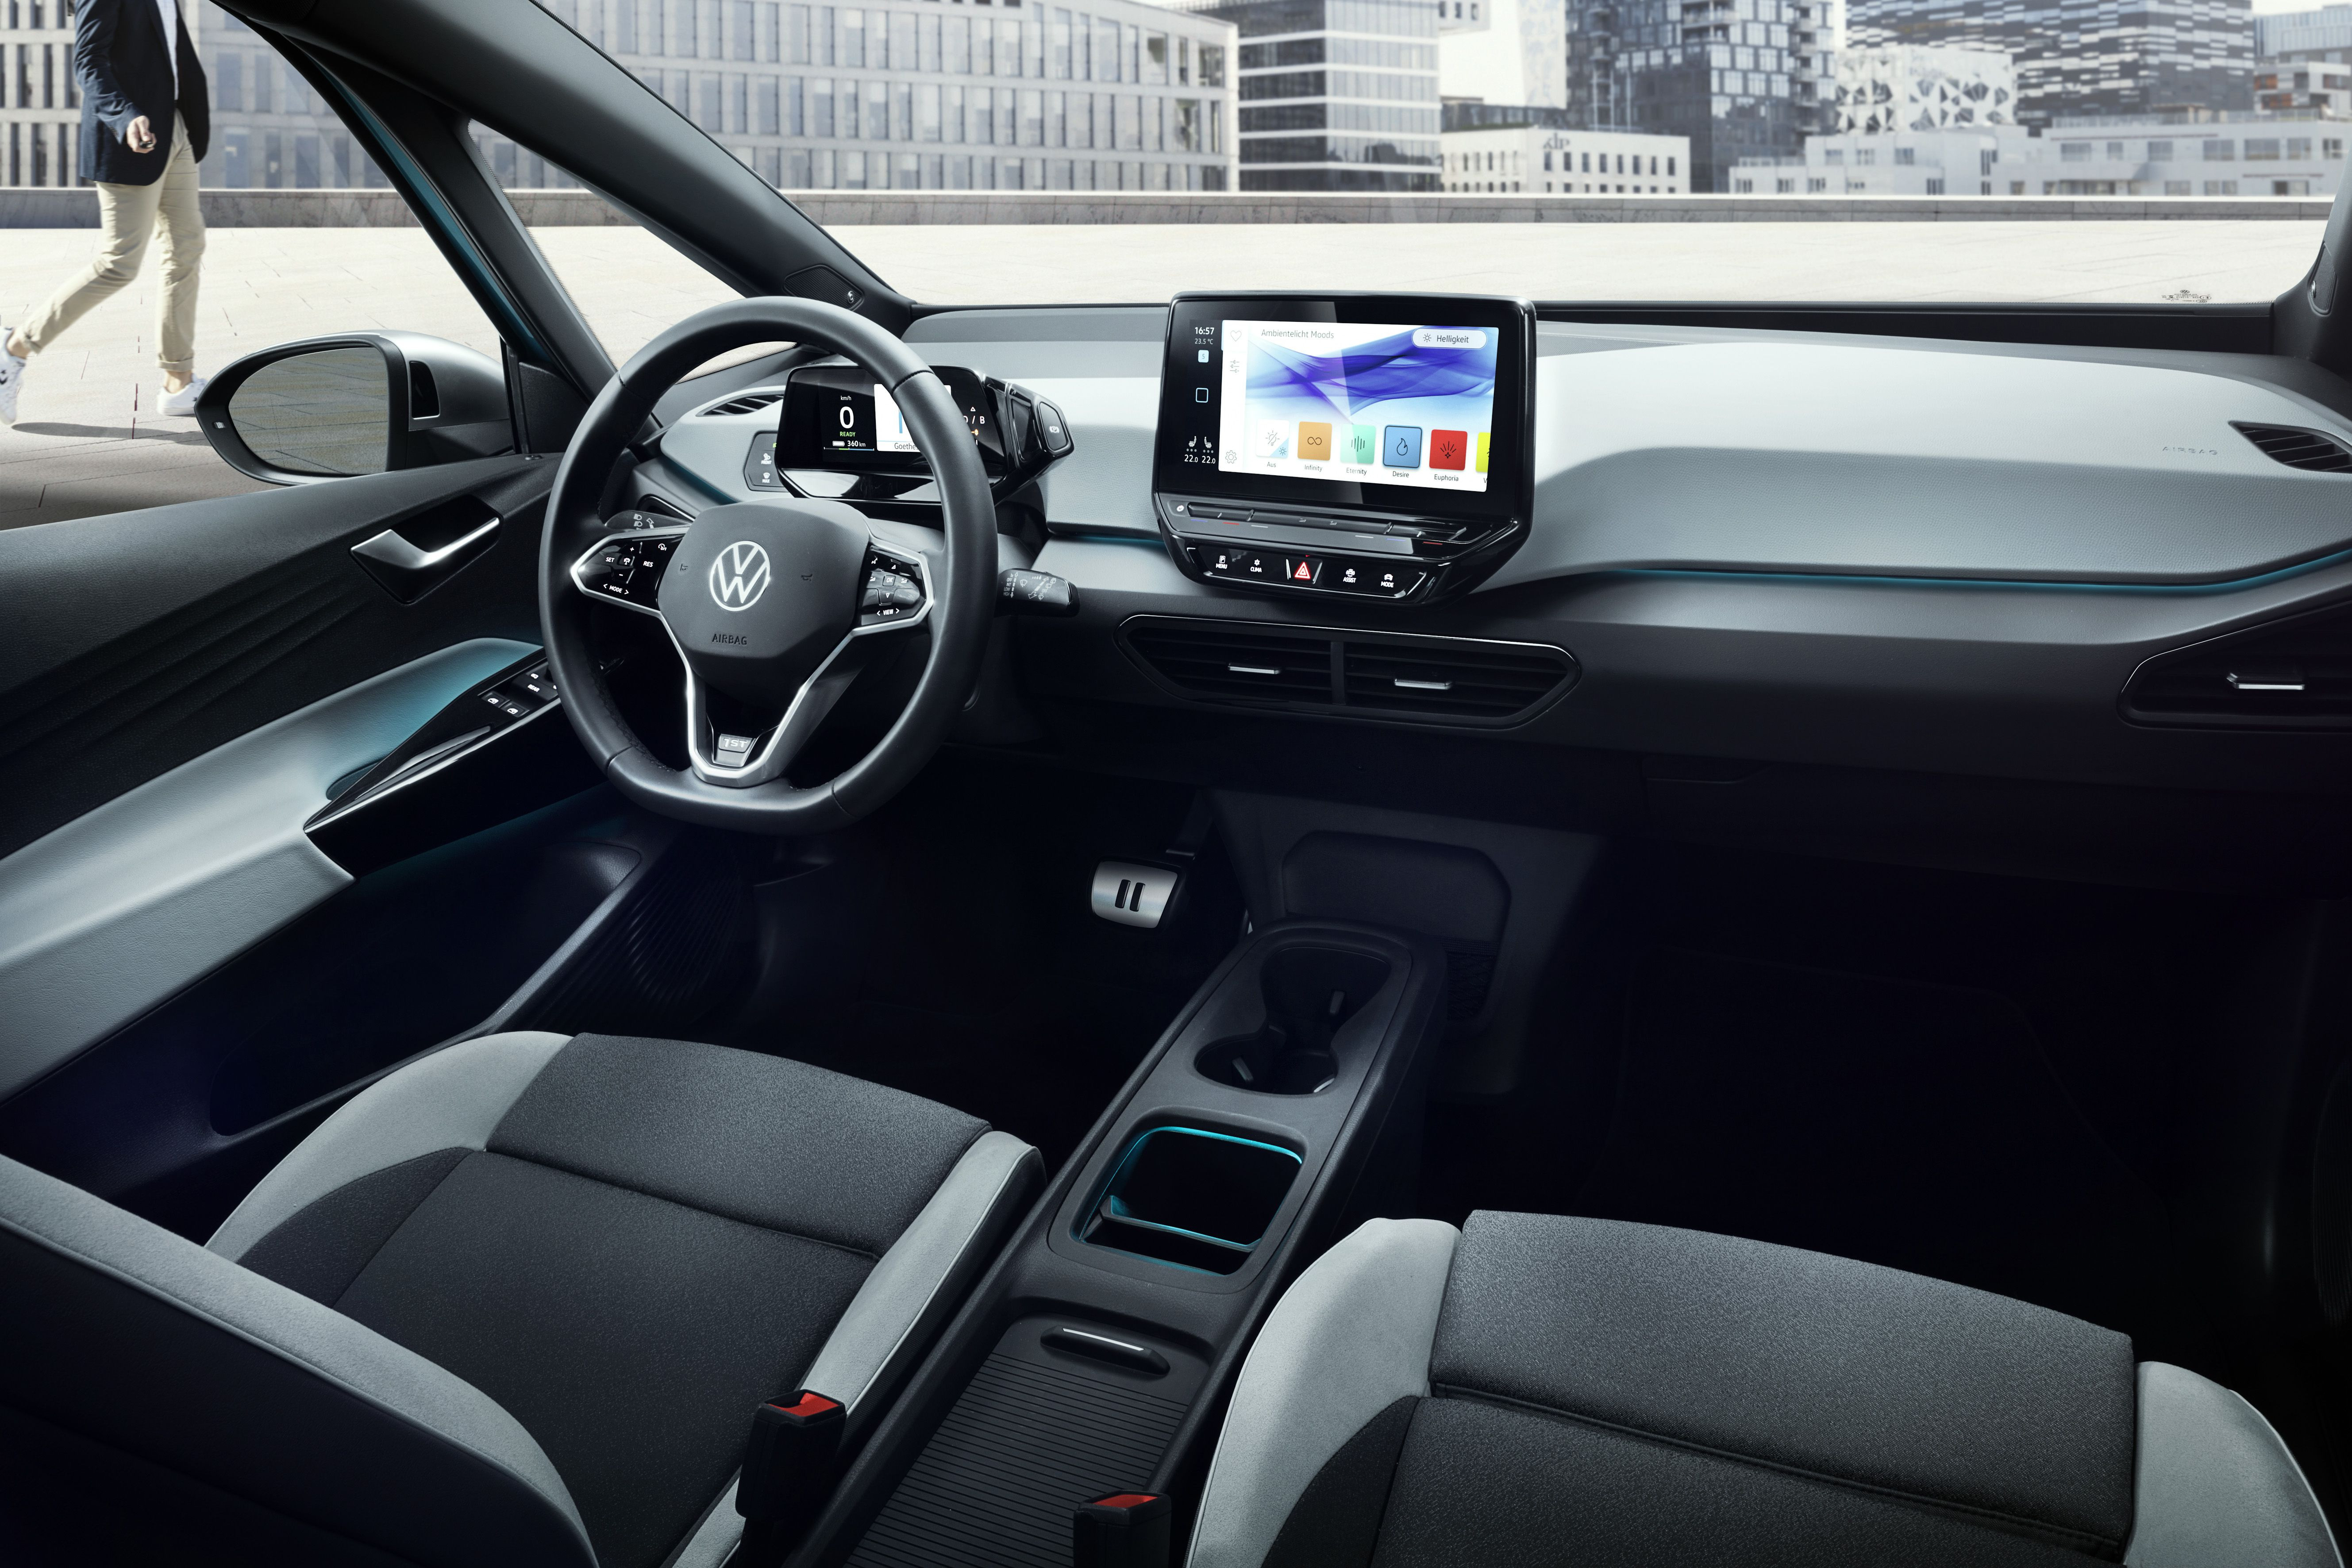 Interior of the Volkswagen ID.3